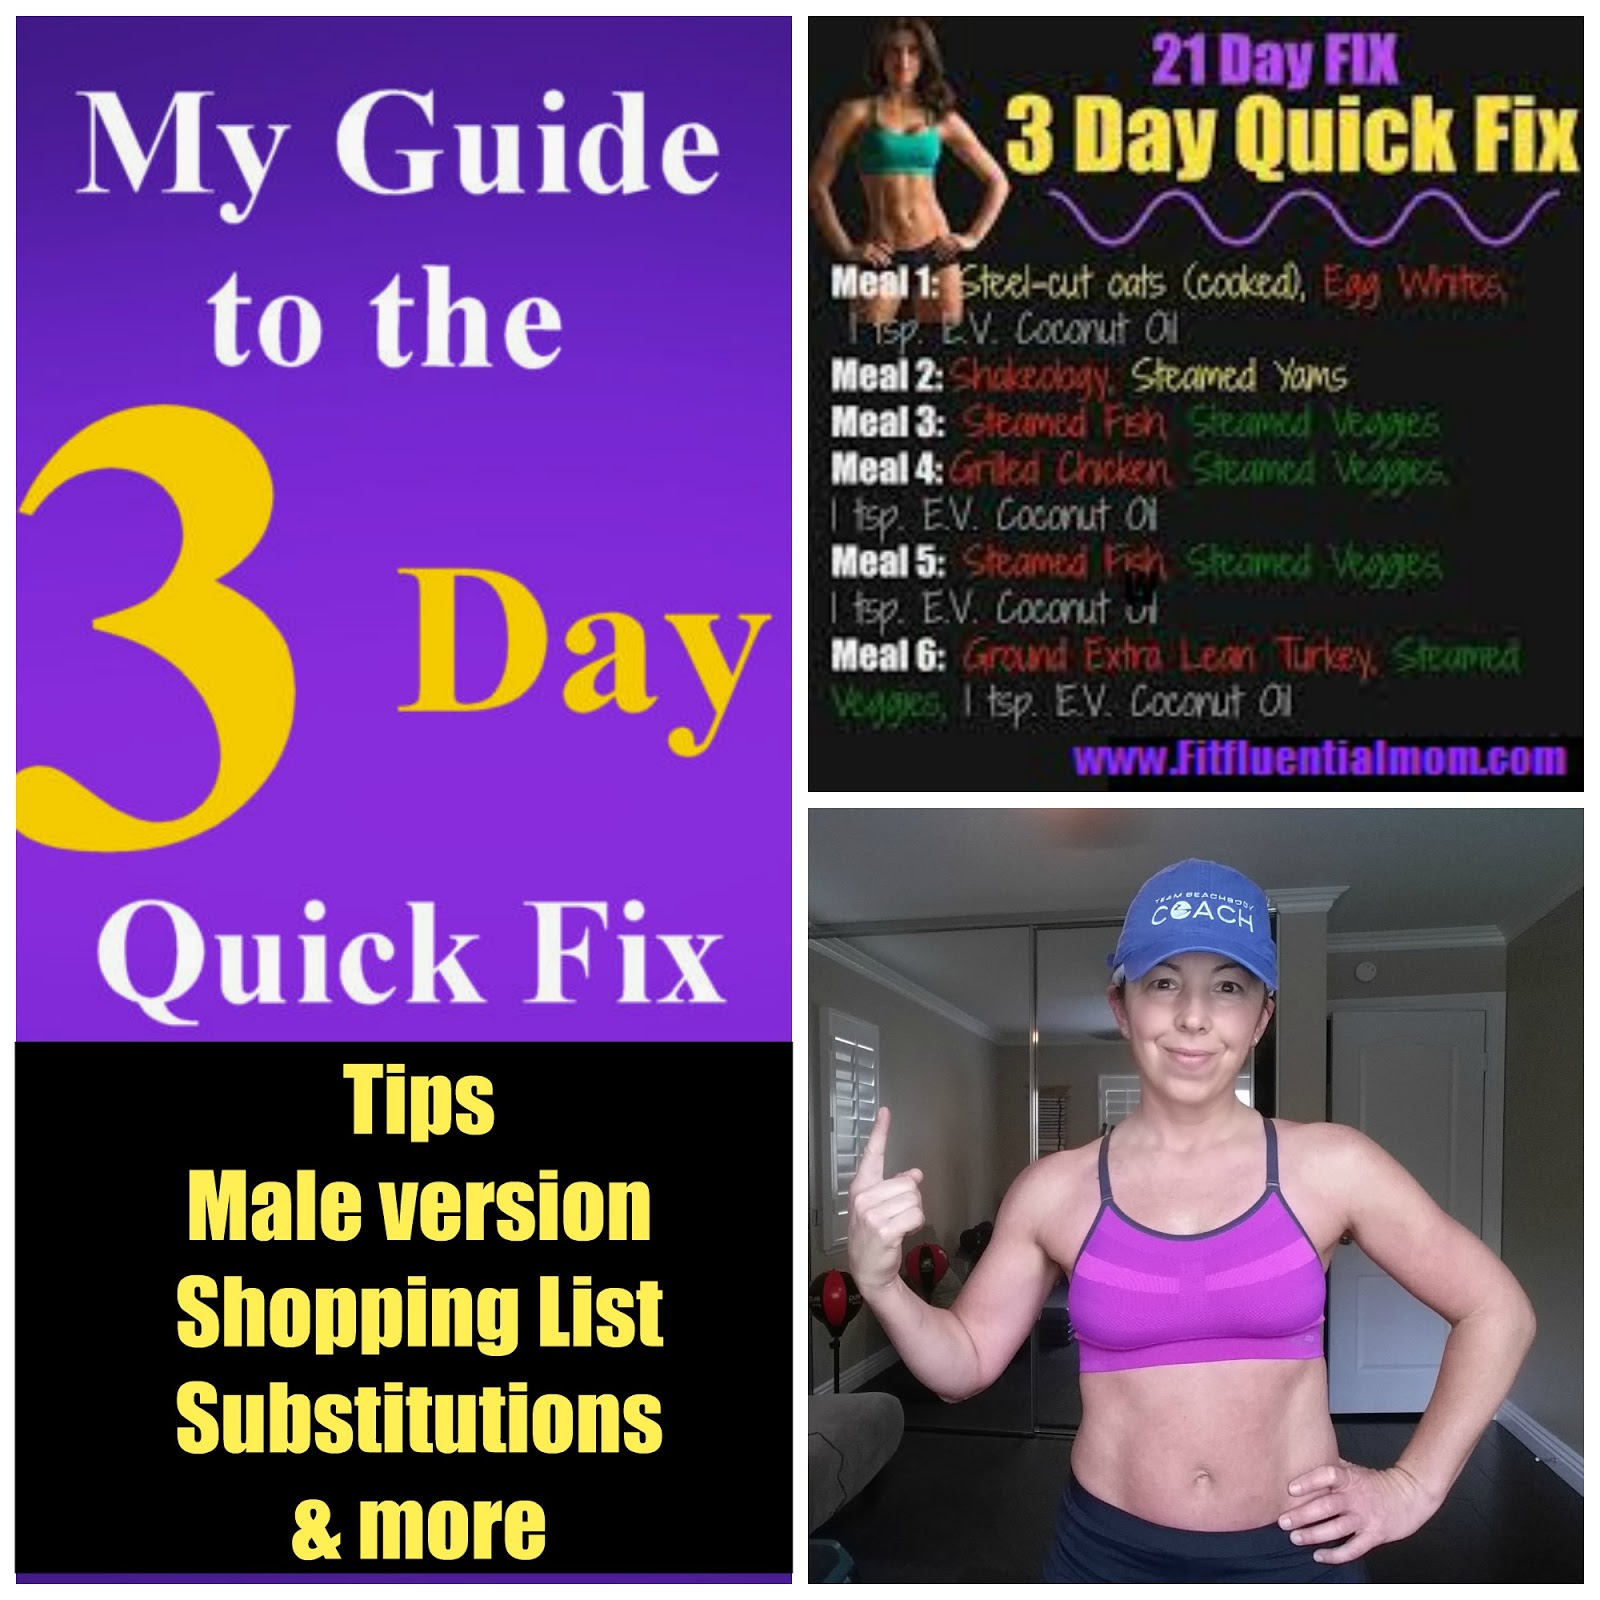 Fit Fluential Mom 3 Day Quick Fix